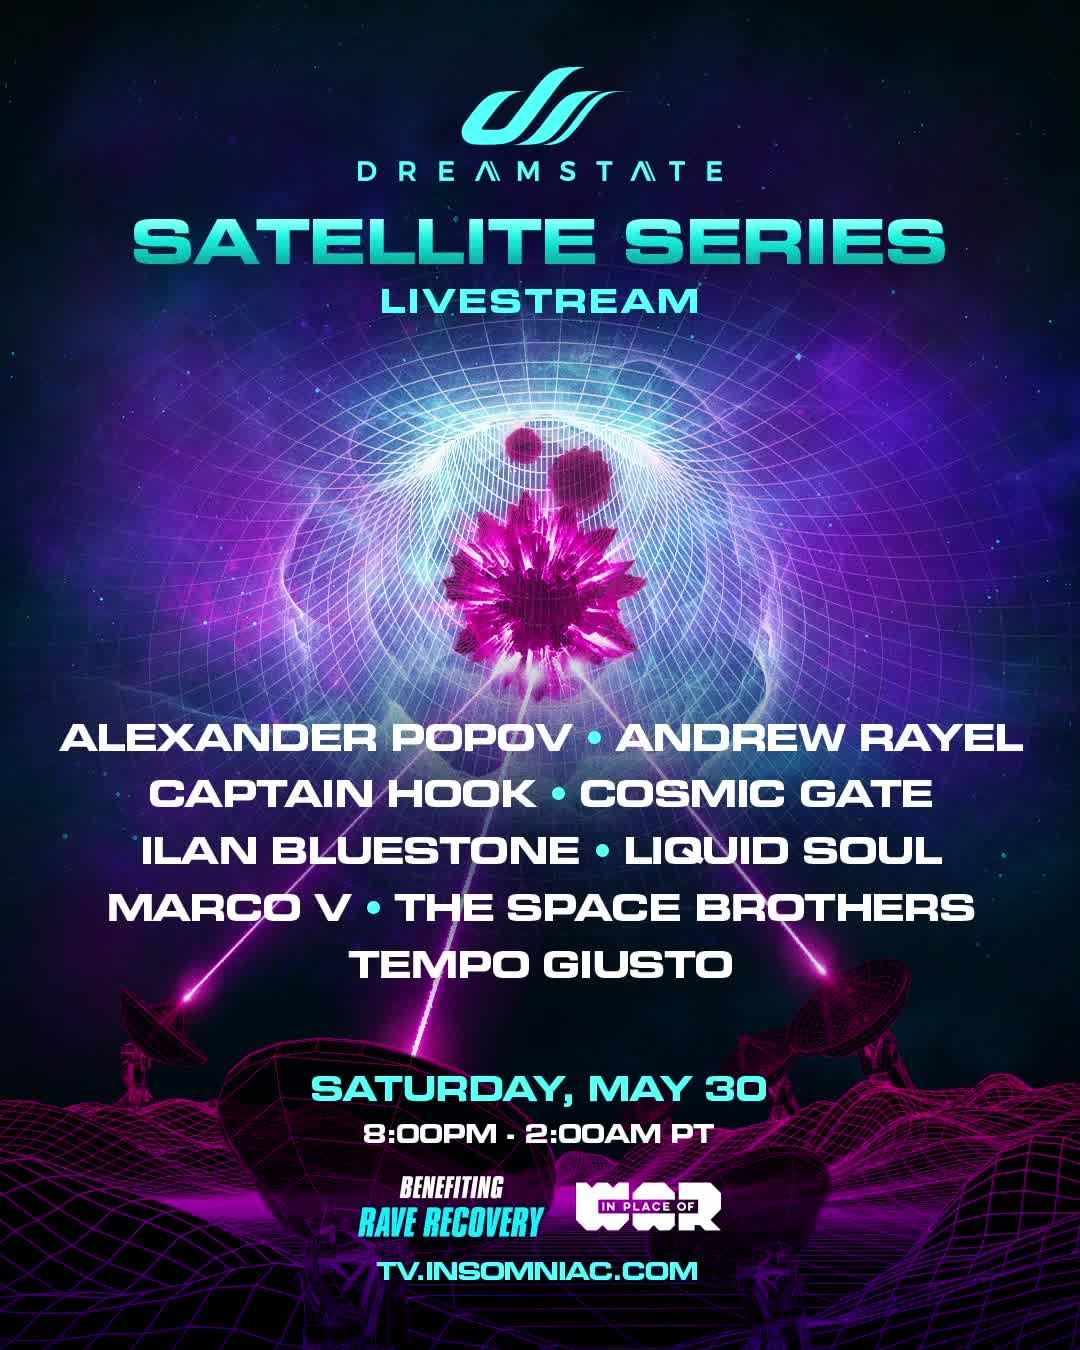 Dreamstate Satellite Series Livestream Lineup